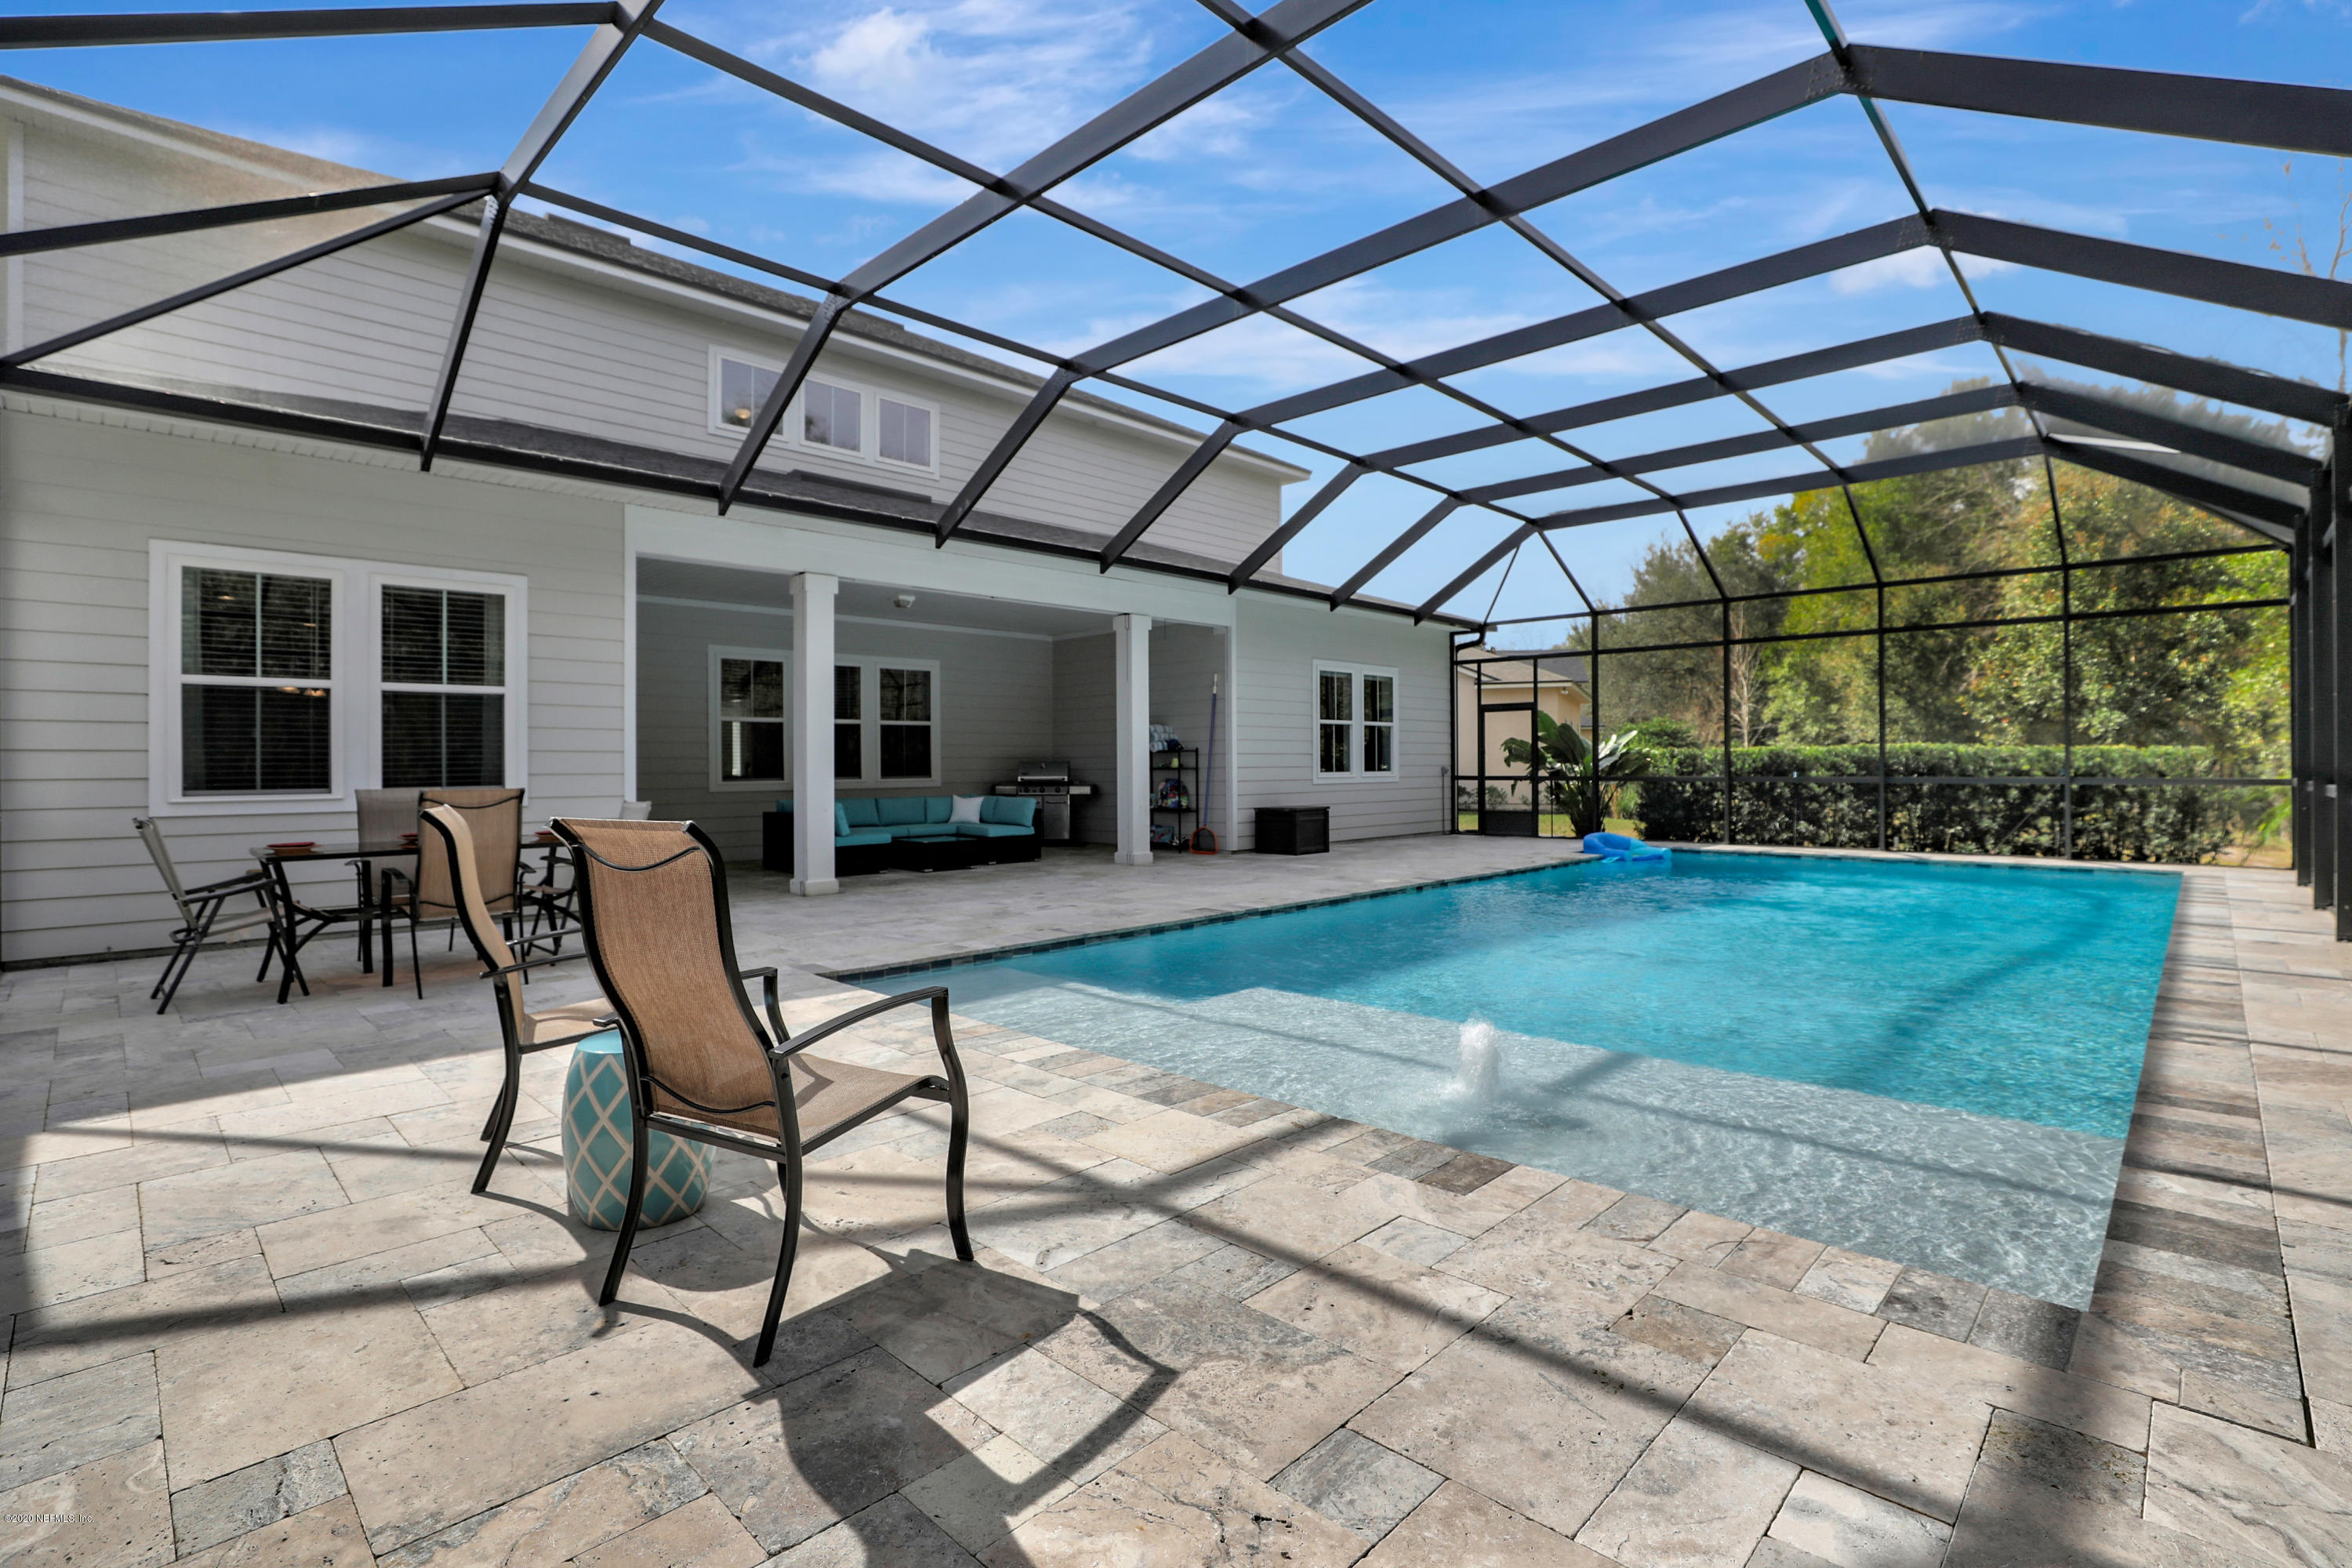 4725 SAWBUCK, ST AUGUSTINE, FLORIDA 32092, 5 Bedrooms Bedrooms, ,3 BathroomsBathrooms,Residential,For sale,SAWBUCK,1037782